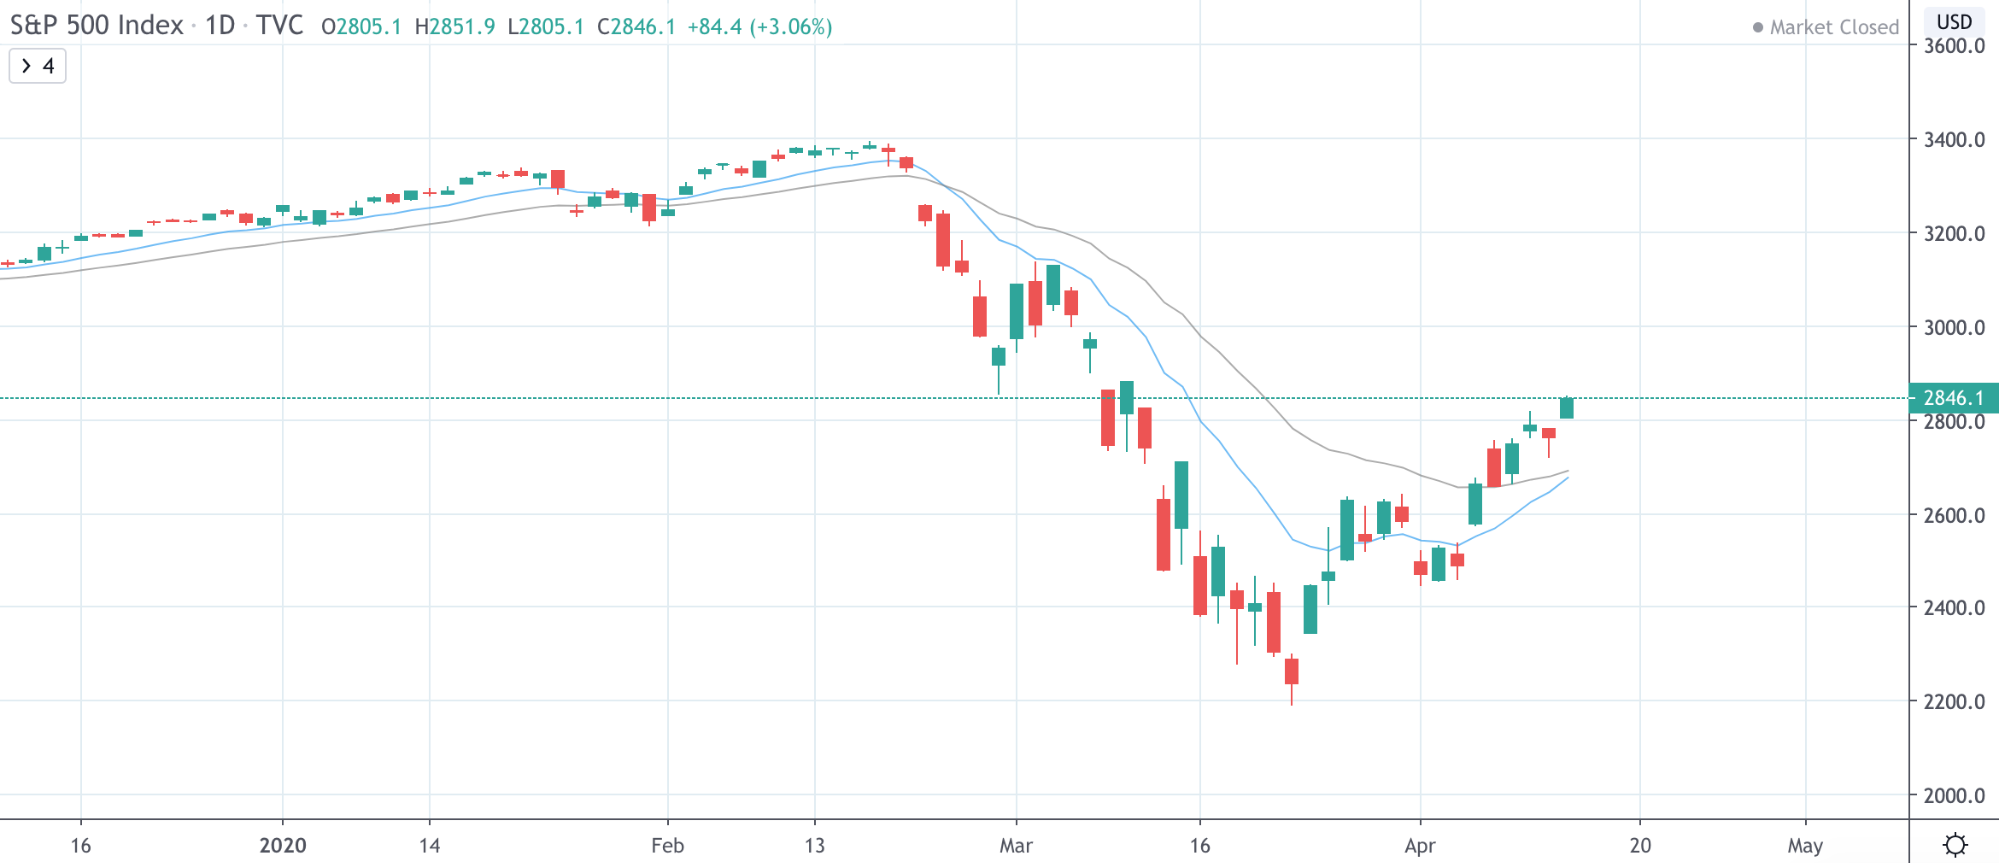 Dow Jones Vs NASDAQ Vs S&P 500: The Differences Traders Need To Know - image18 1